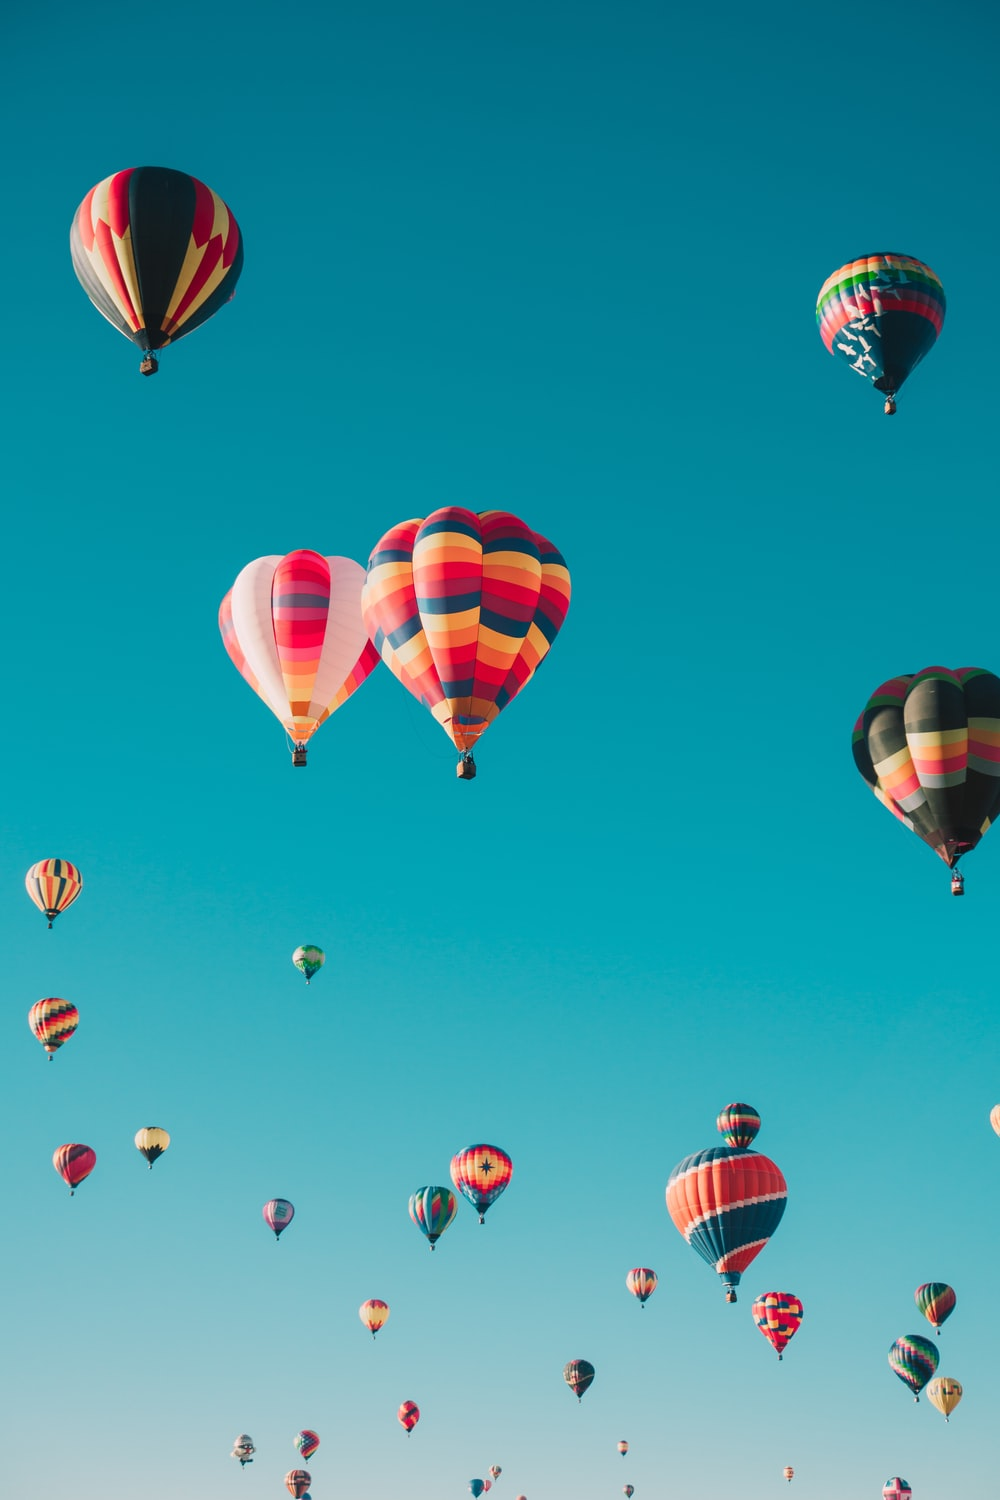 assorted hot air balloons flying at high altitude during daytime